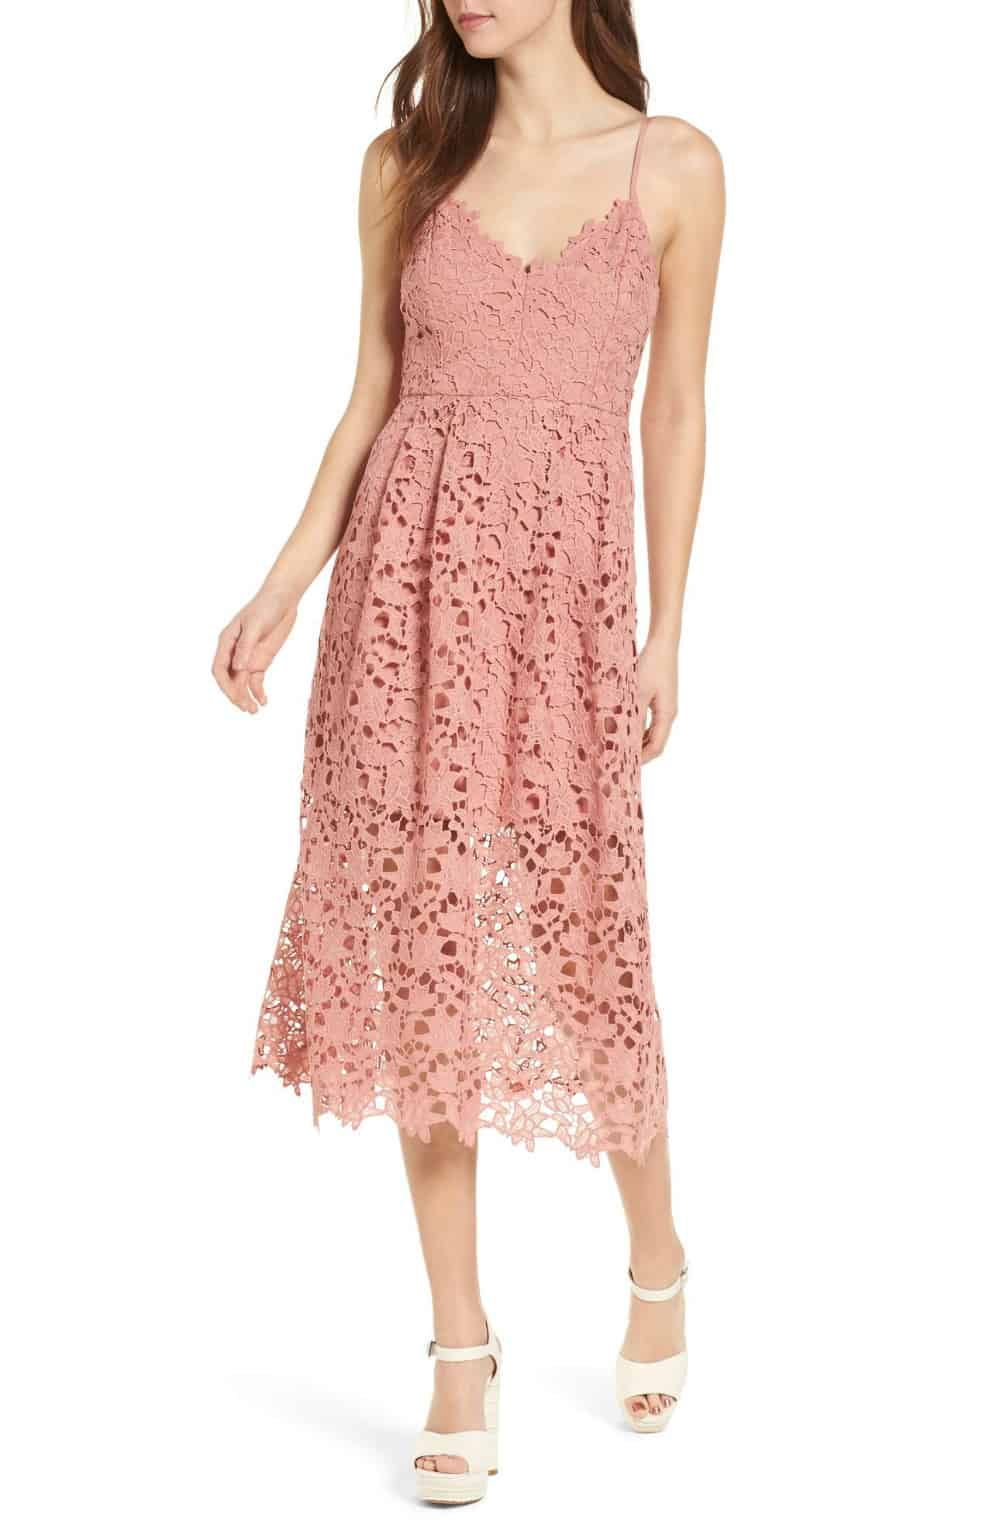 Dusty Pink Lace Midi Dress for a